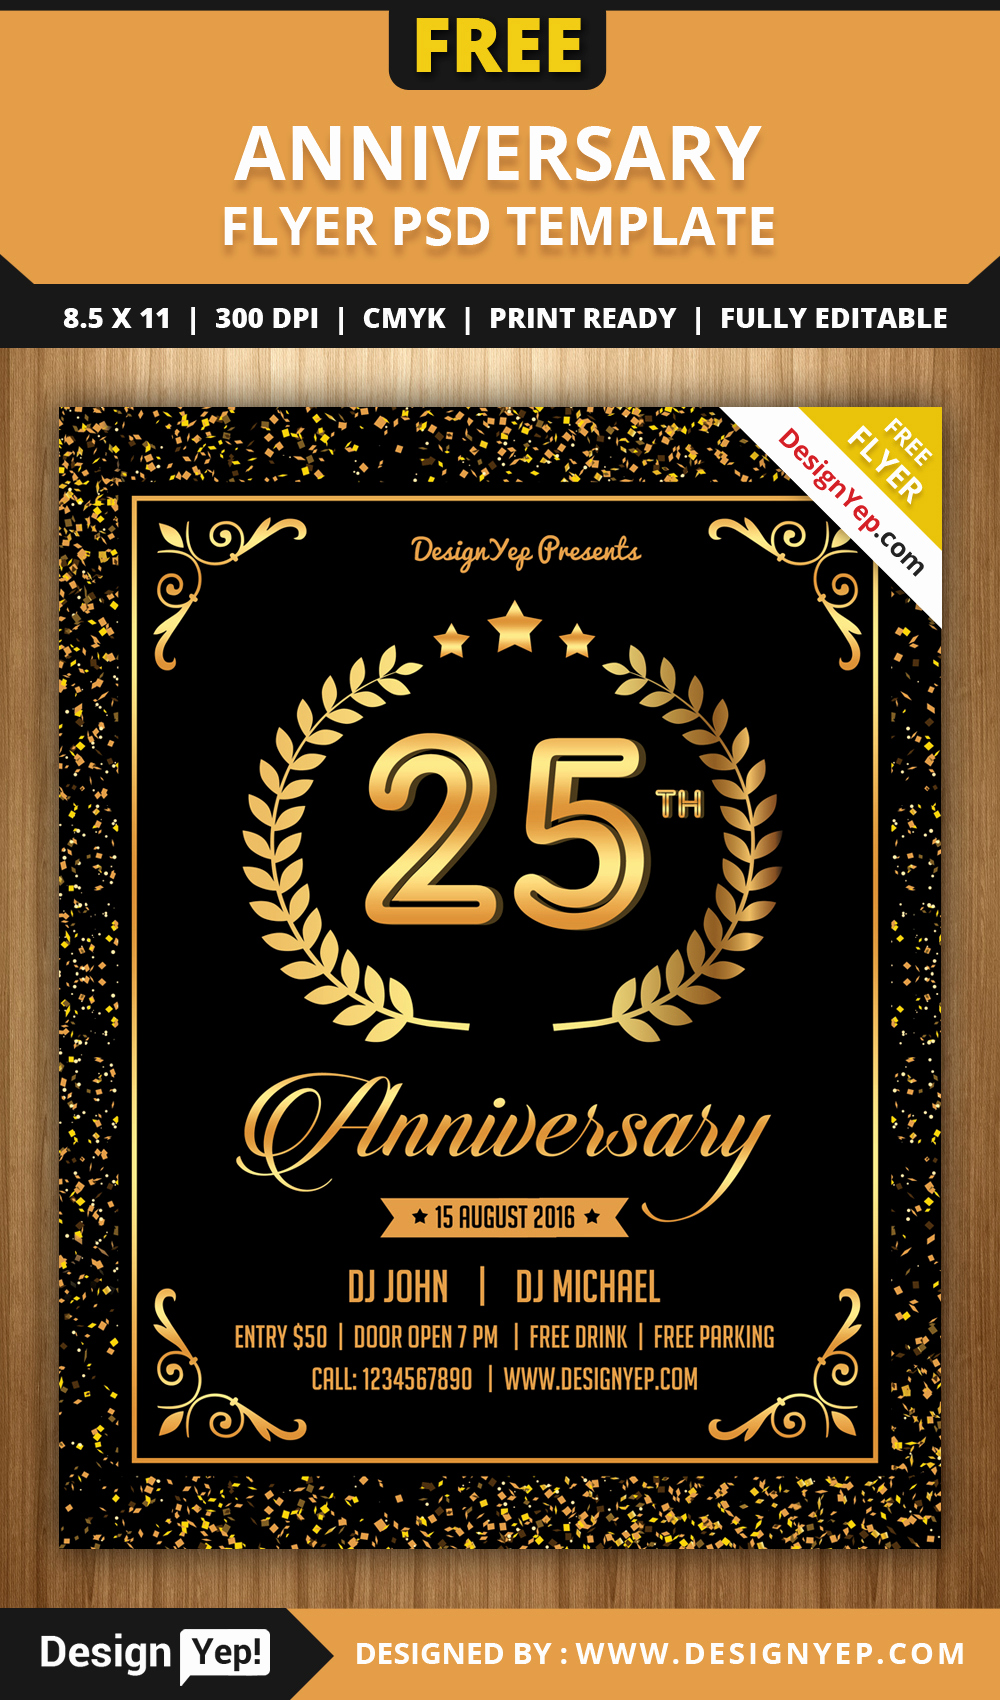 Free Download Flyer Template Best Of Free Anniversary Party Flyer Psd Template Designyep